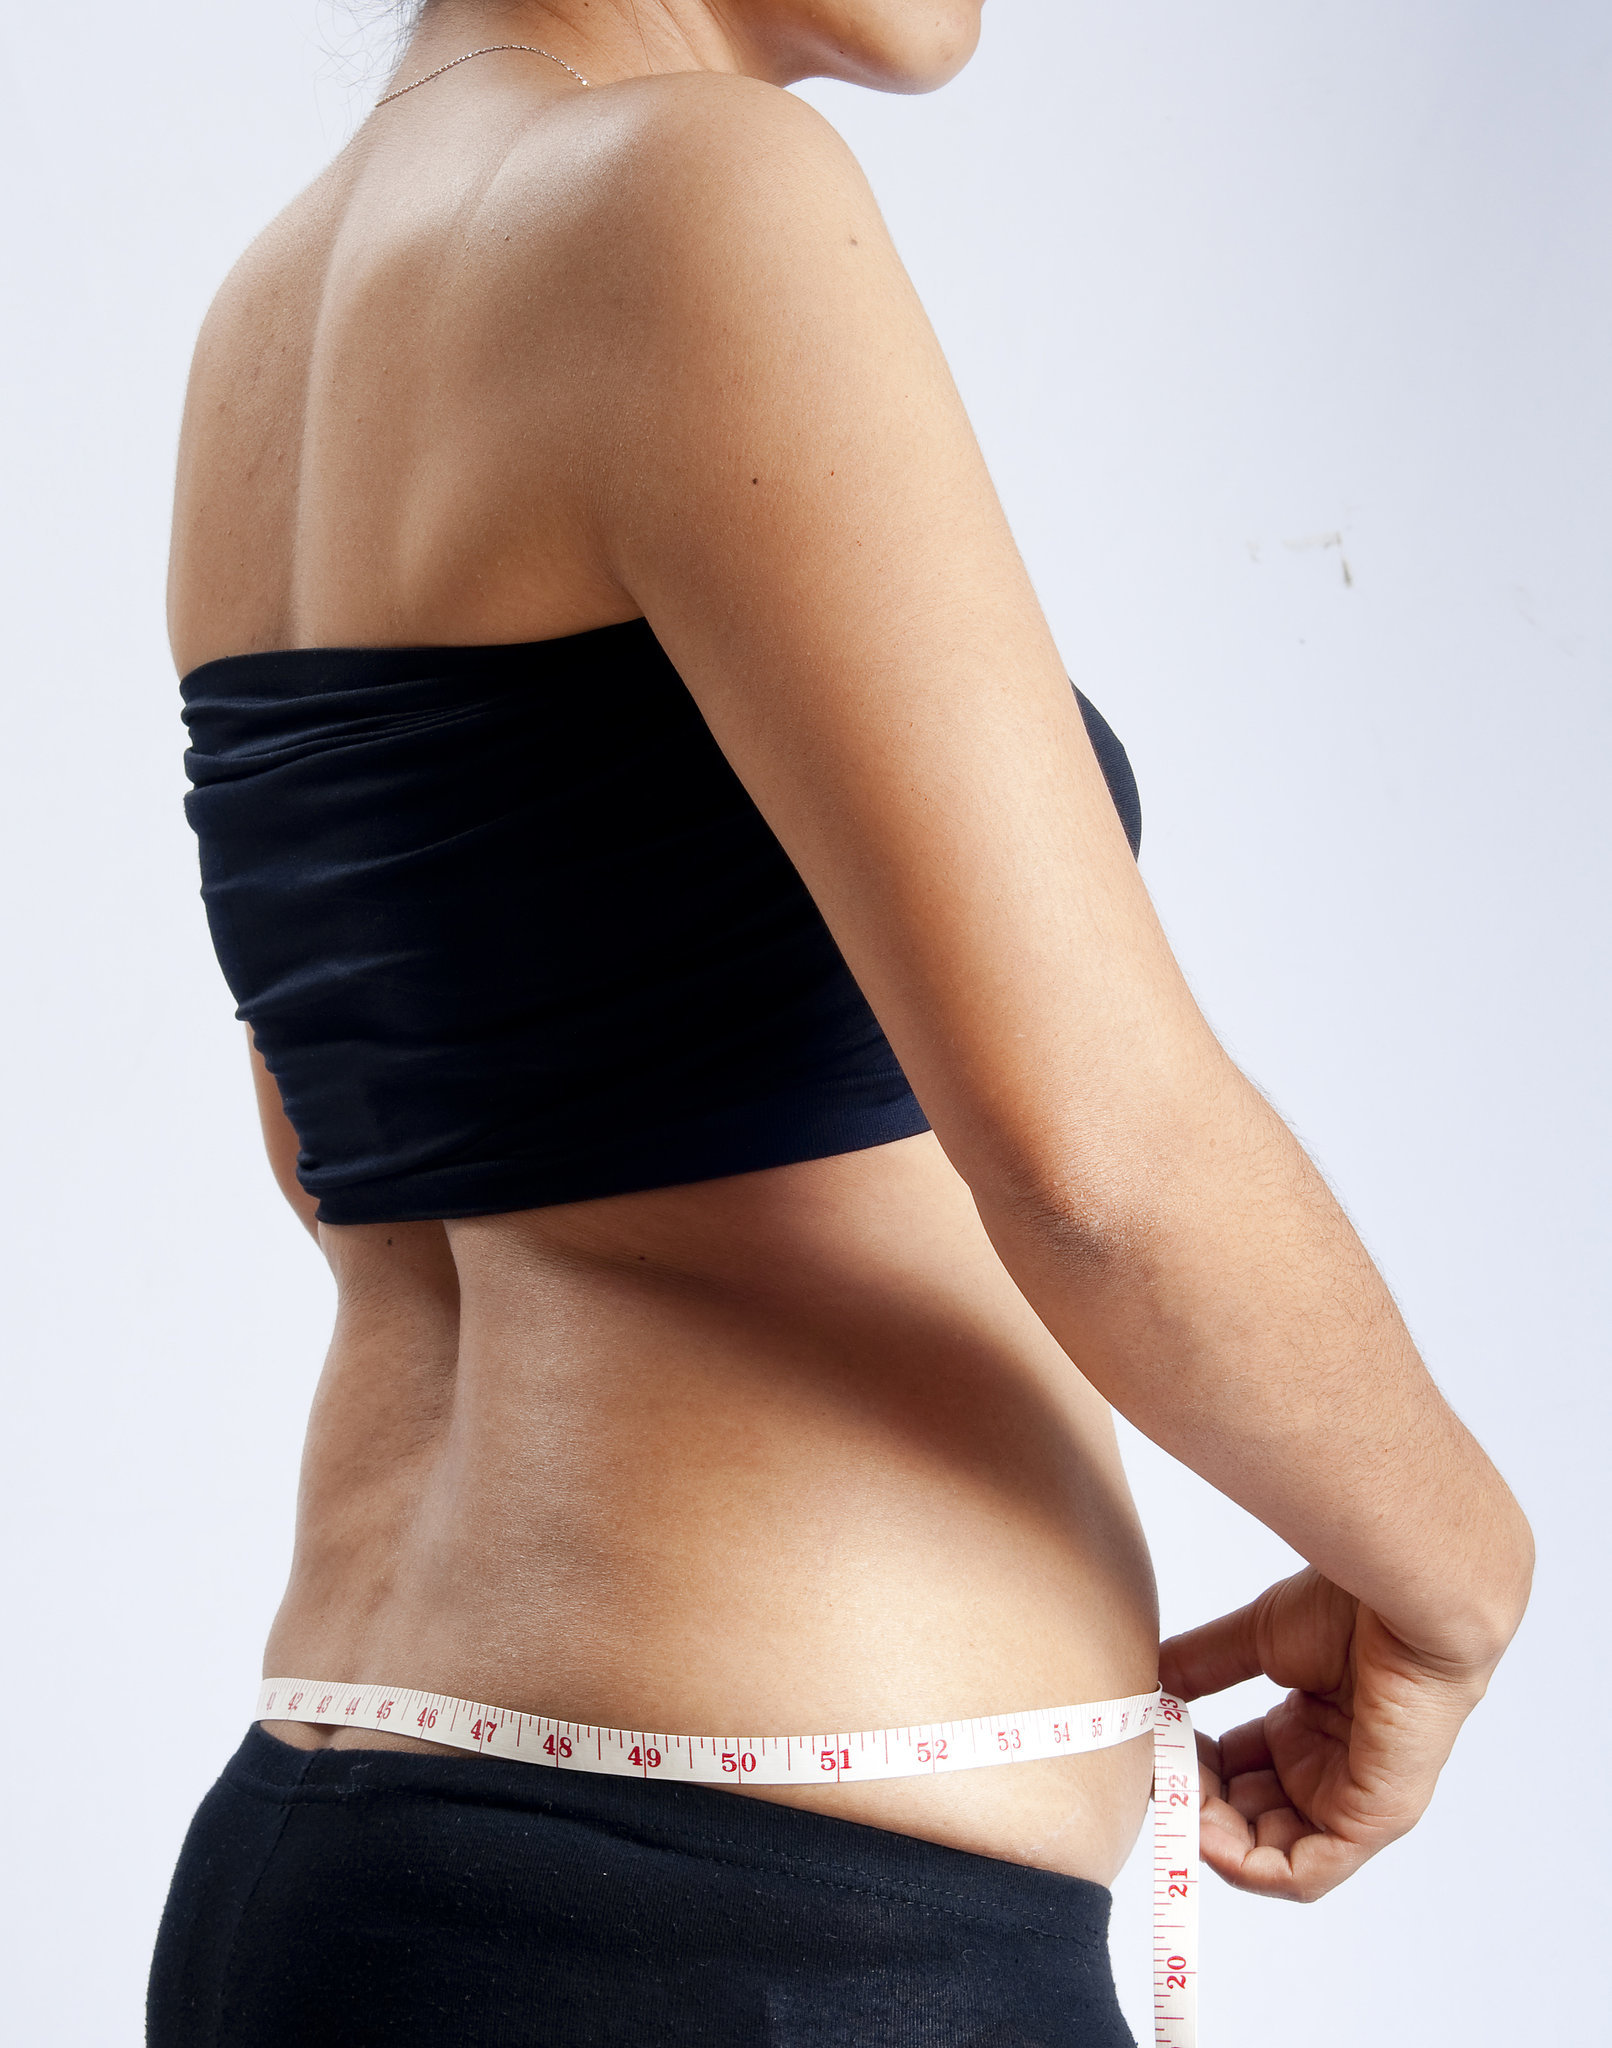 How to Prevent Weight Gain Without Dieting | POPSUGAR Fitness